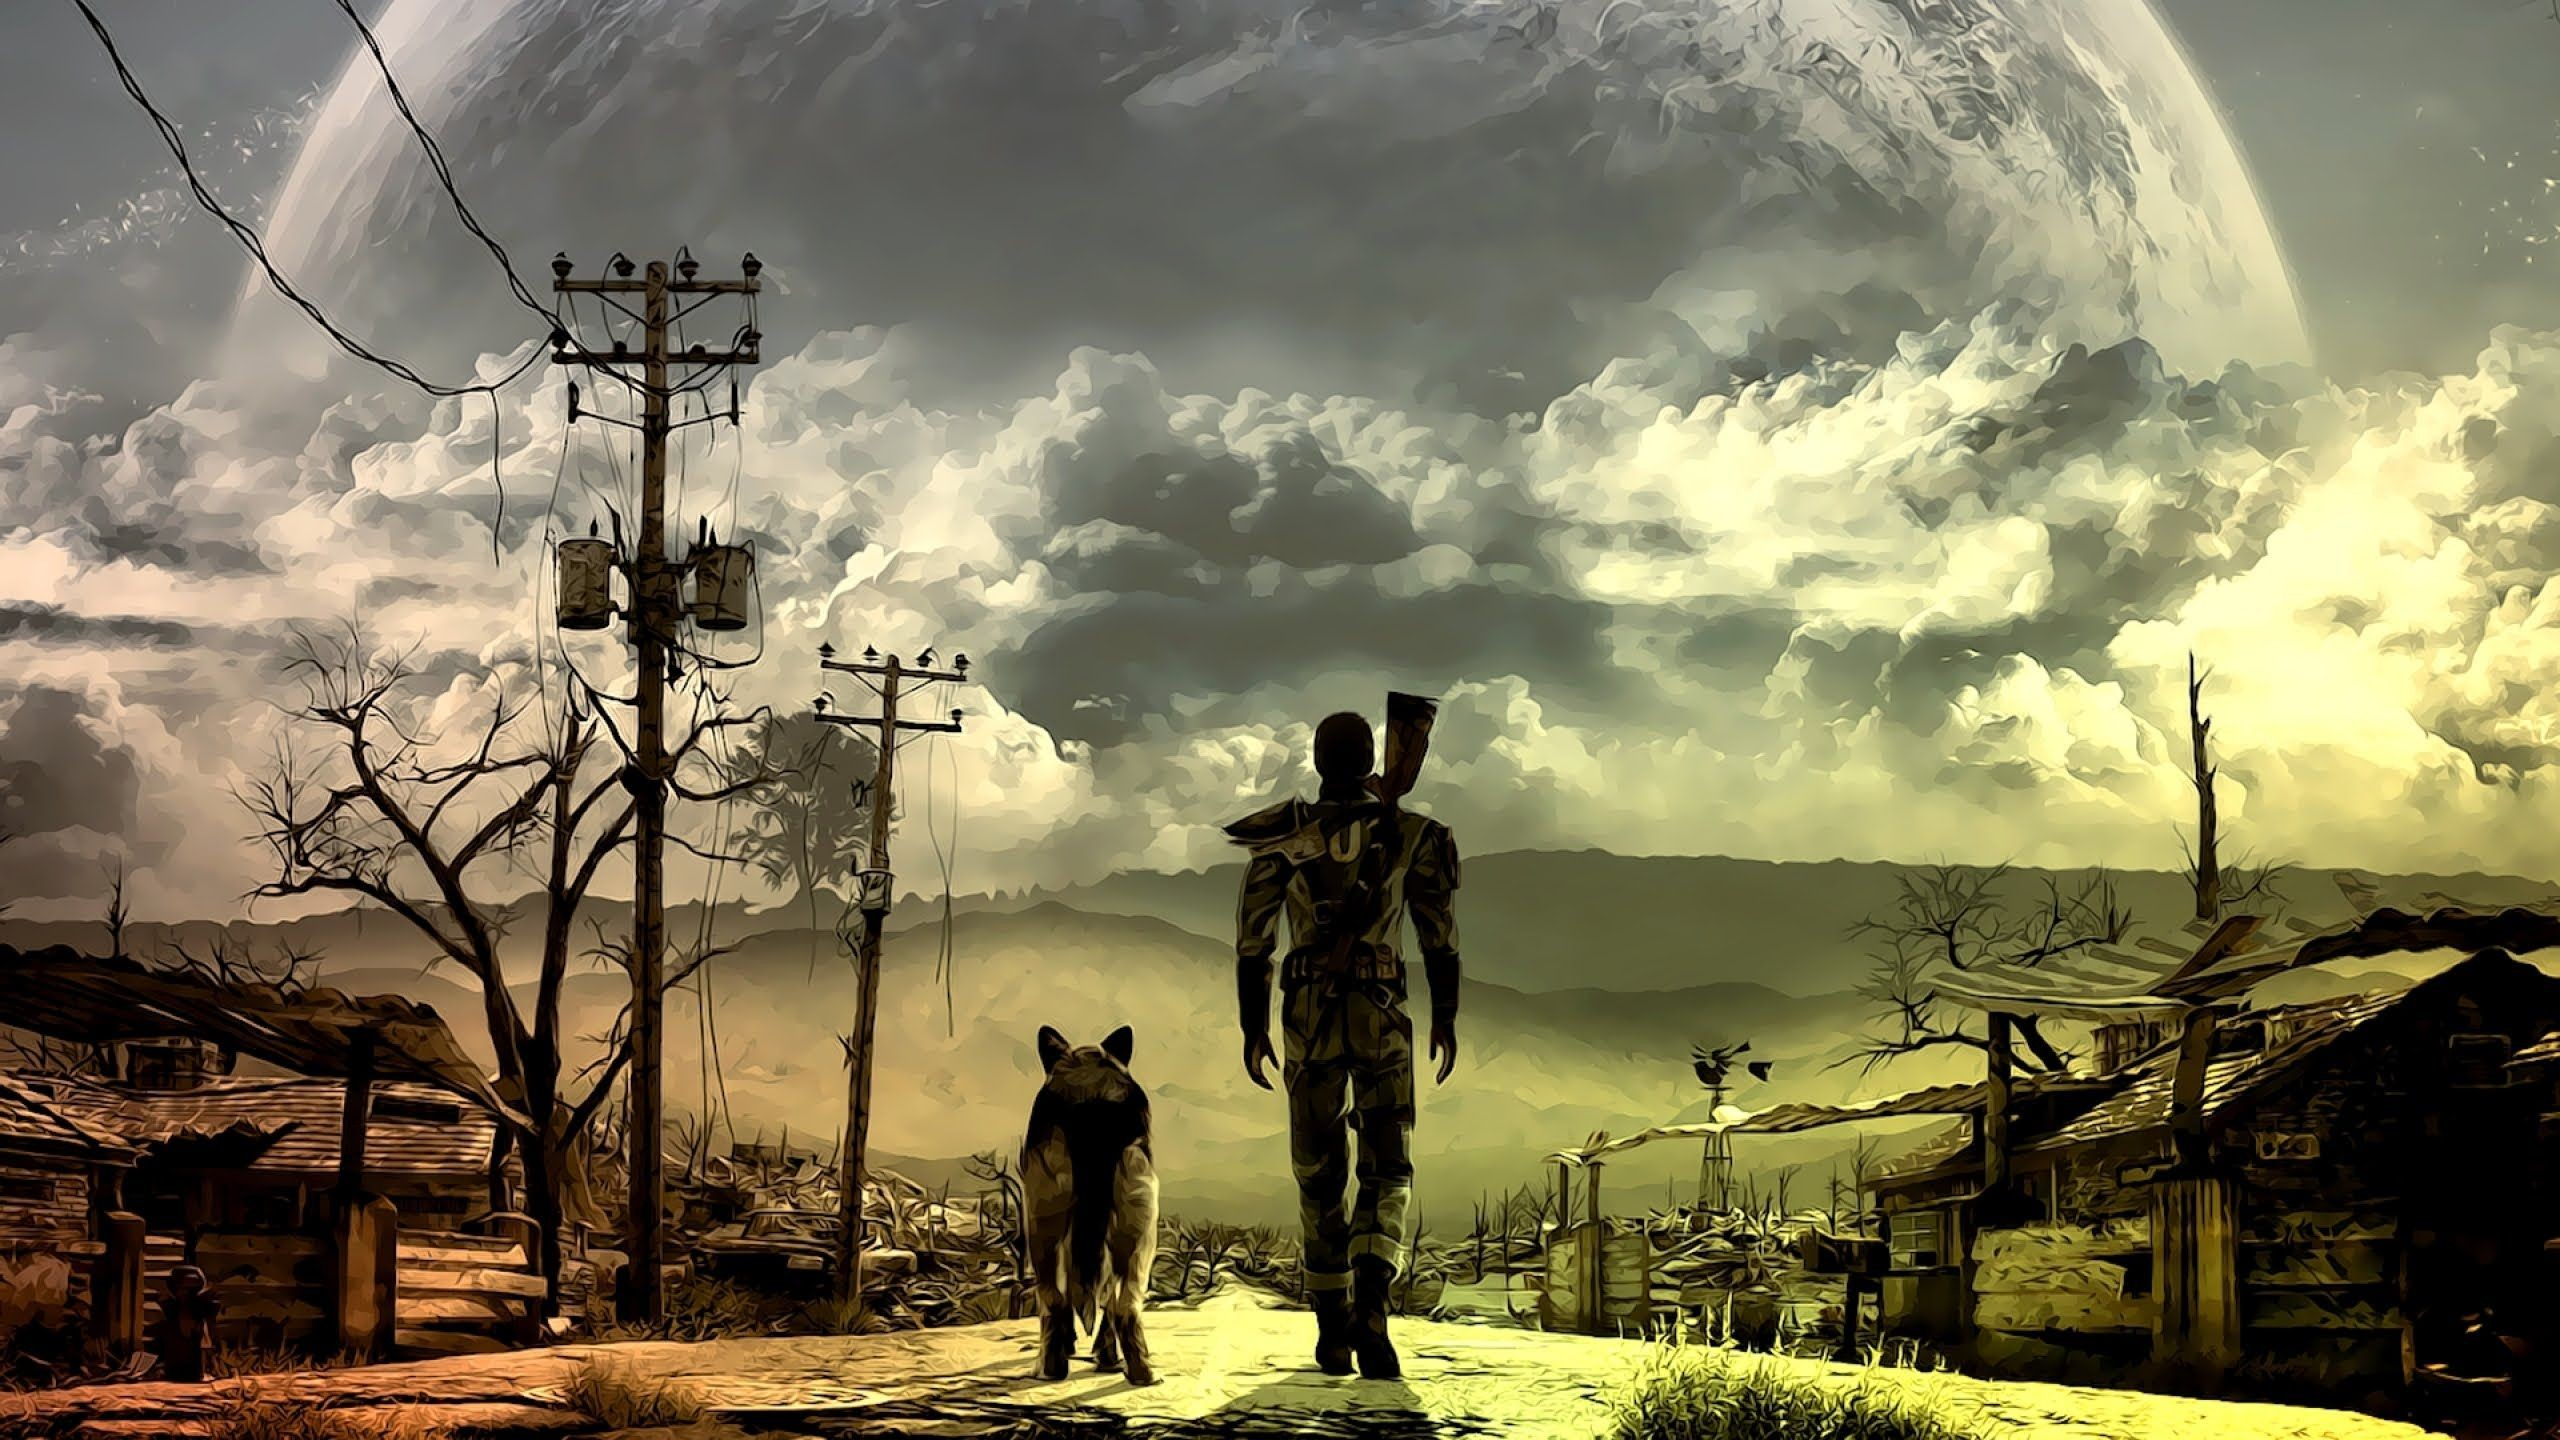 Fallout 4 wallpaper 1080p ·① Download free cool full HD ...